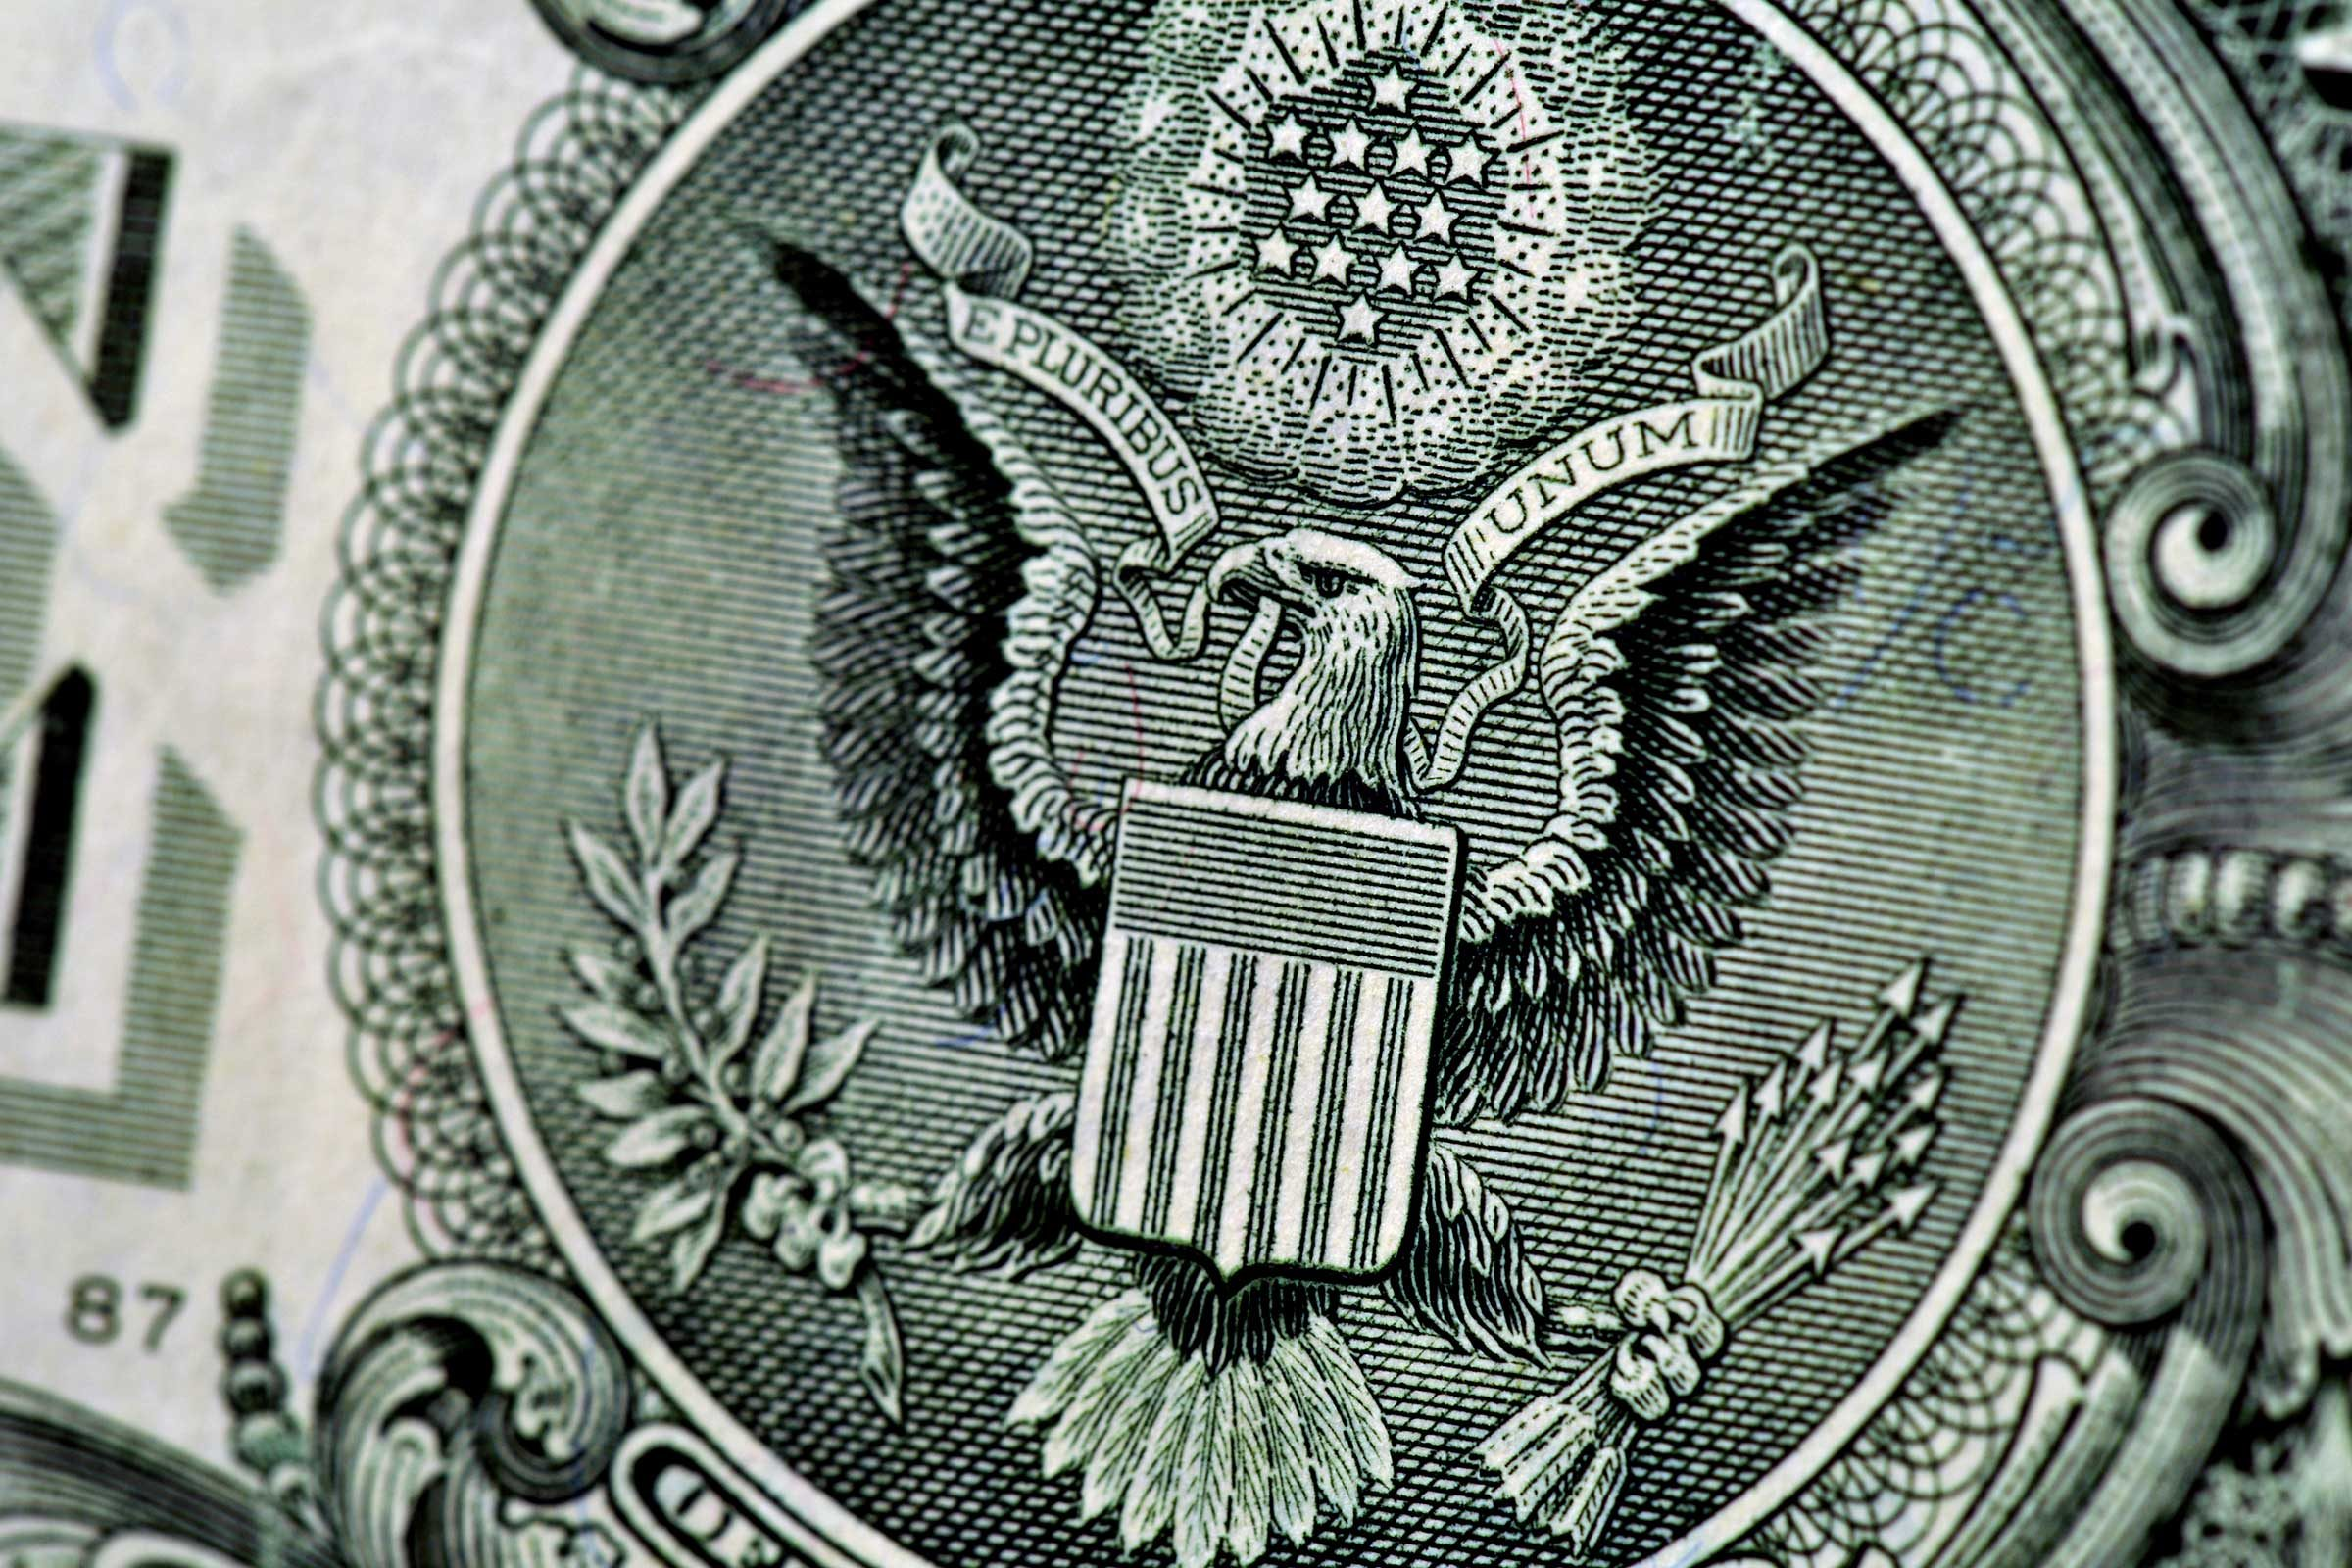 Dollar Bill Symbols What They Mean